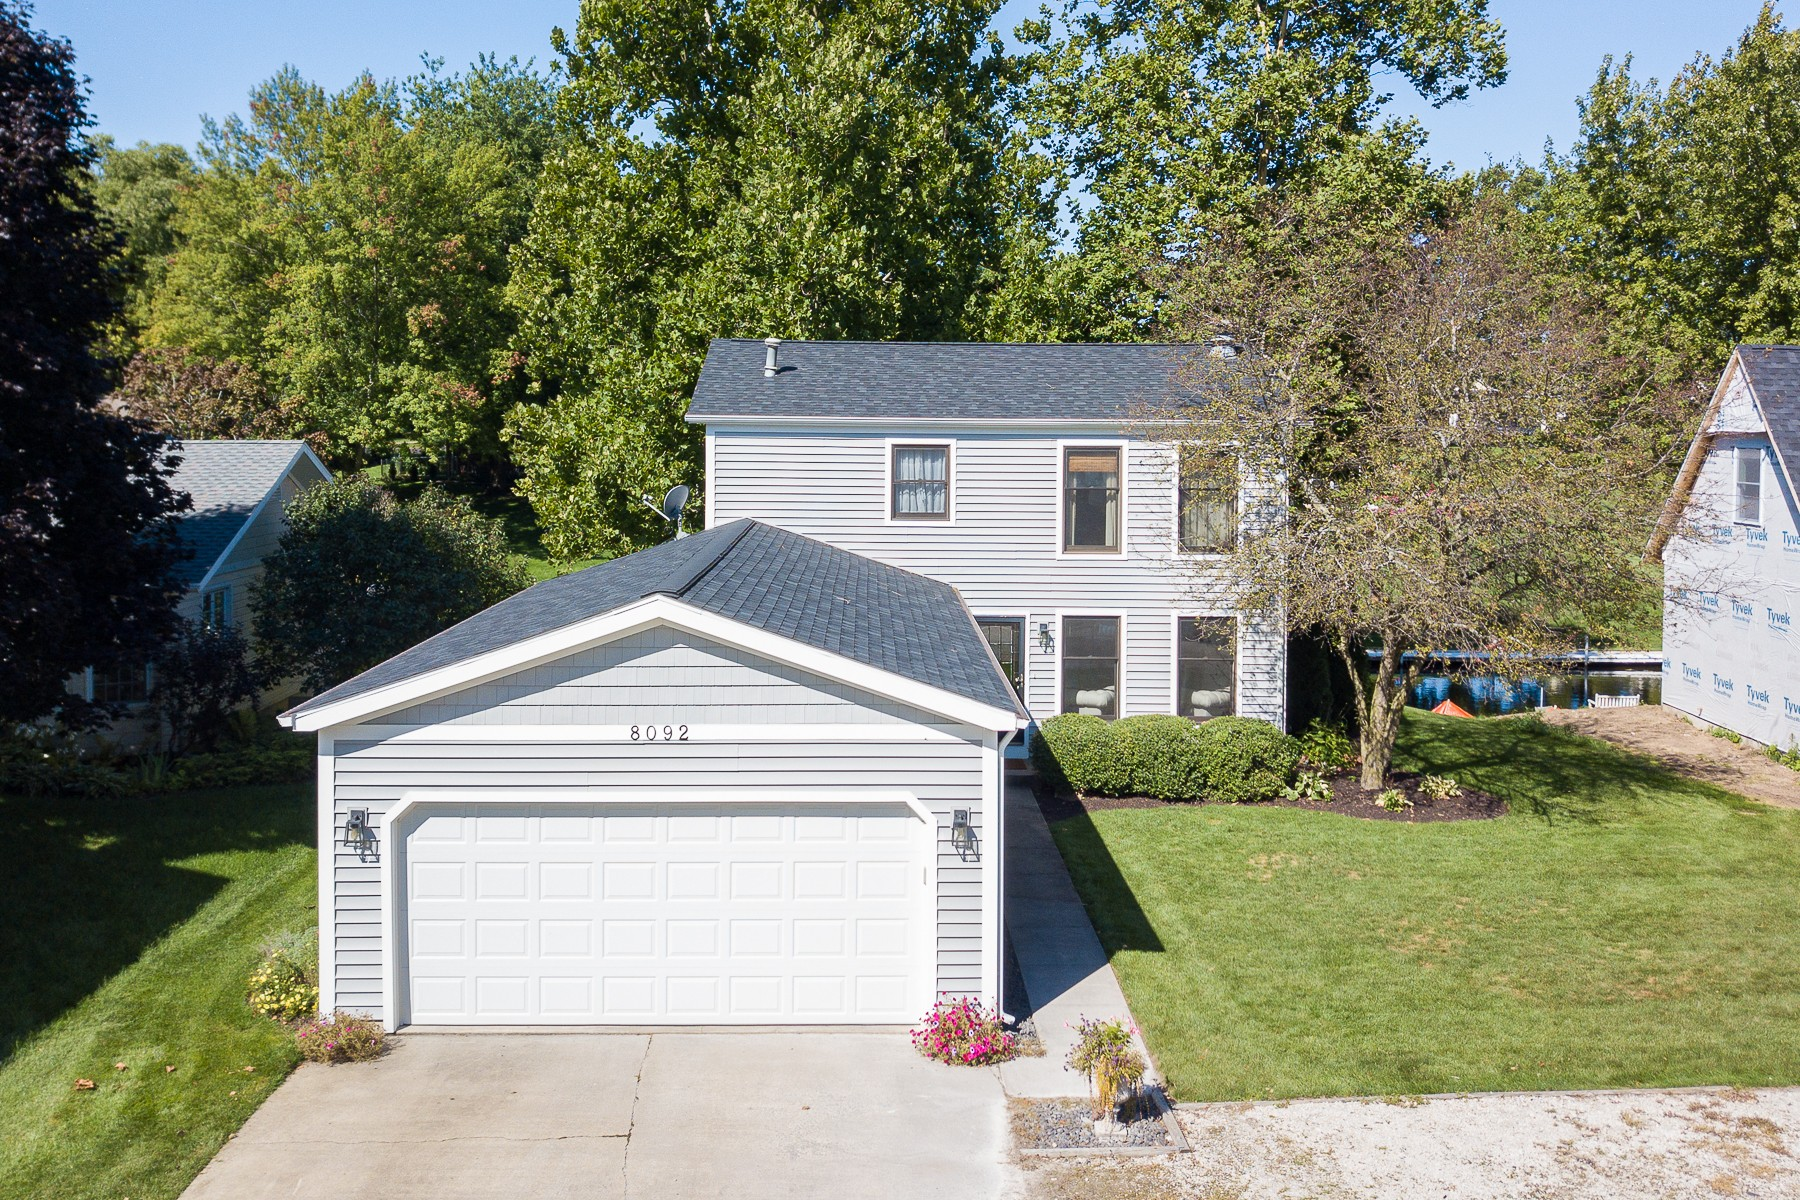 Single Family Homes for Active at Affordable Lake Wawasee Living 8092 E Quiet Harbor Dr Syracuse, Indiana 46567 United States